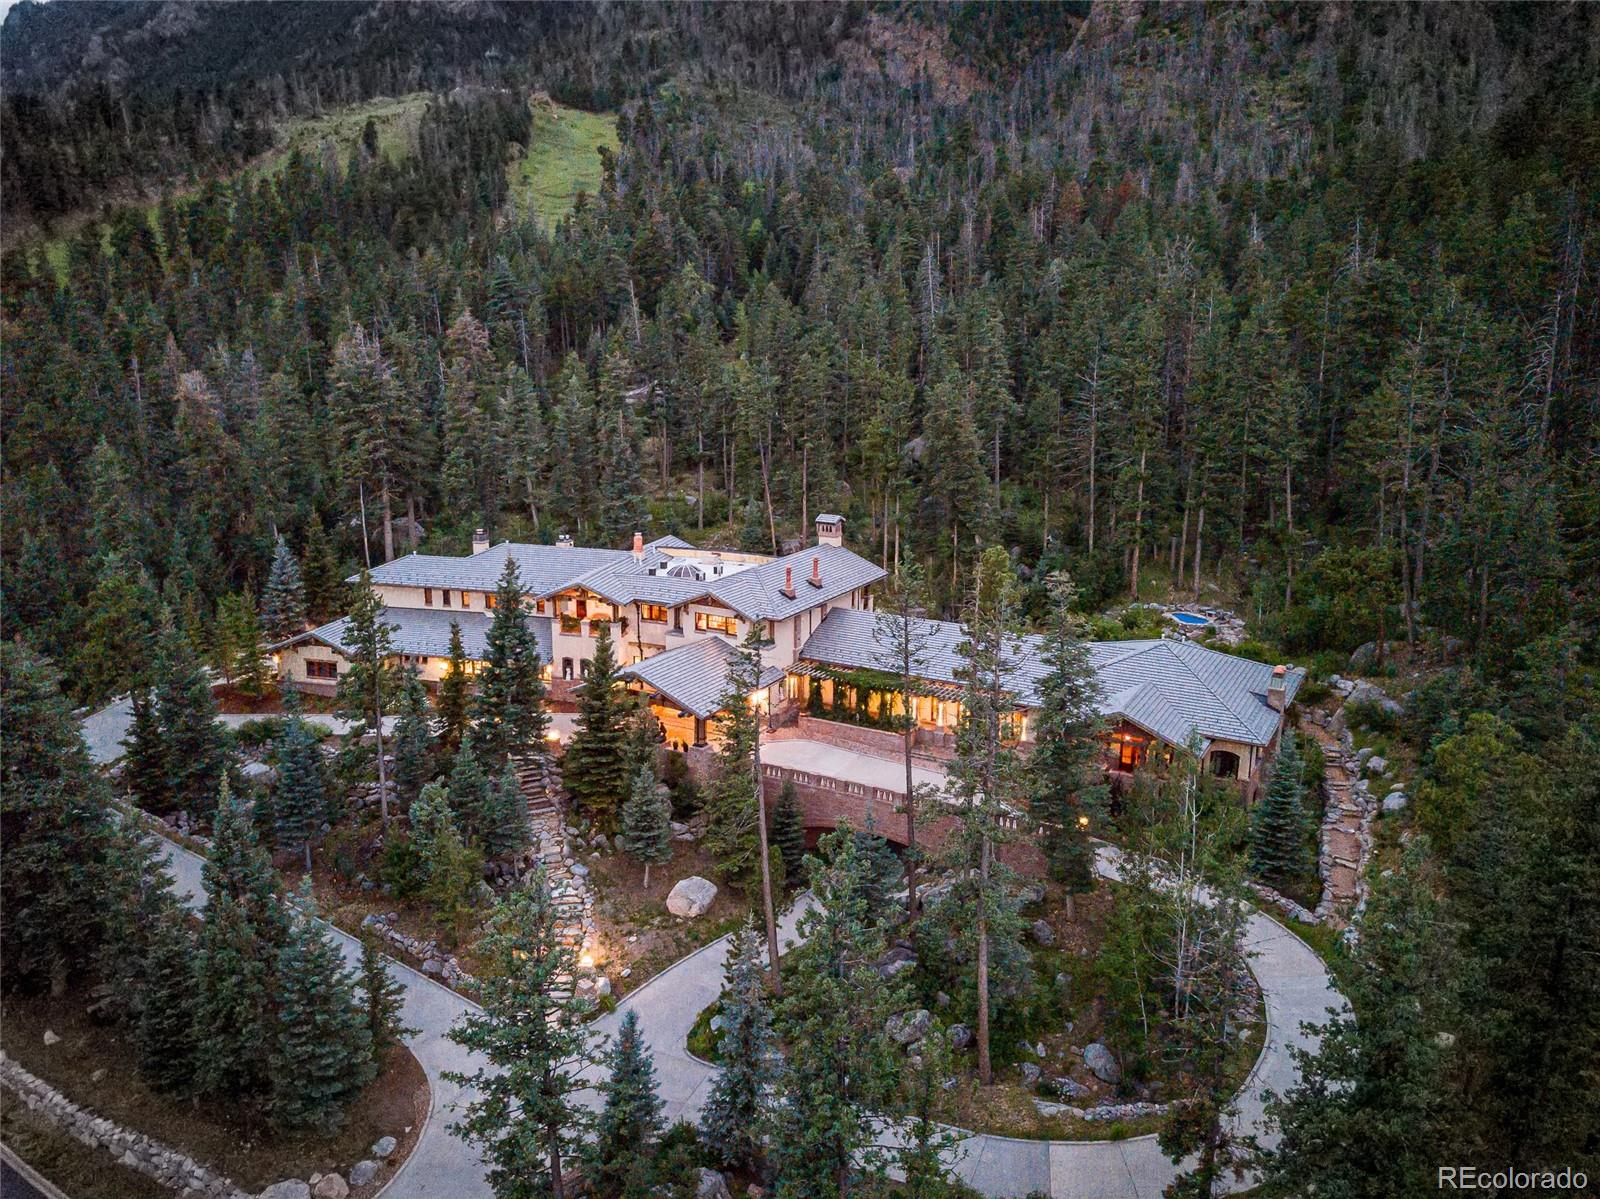 Influenced by iconic Craftsman style homes, this dignified estate sits beneath the steep slopes of Cheyenne Mountain. Set in this stunning geologic setting, the intent was to reflect that power in the home's 24,000 square feet. Using granite sourced from the mountain, a mass of boulder creates the foundation, which gives way to brick walls. The brick, hand cast in wood forms, is one of many handmade materials used on the home to connect the setting's raw beauty with human warmth and ingenuity. Completed in 2004, the home's 7 bedrooms, 12 baths & 8 fireplaces showcase work of renowned craftsmen across the country and around the world. at the home's entrance, one is greeted by a grand, redwood timber prte-cohere, designed to invite the mind into another world. Spanning a natural ravine, the house is seamlessly split into two areas, the private north wing & the social/family south wing. With its own entrance, the north wing opens into the home's entrepreneurial headquarters. Here, the workspace is complemented by two bedrooms, a kitchenette, and two baths. Underneath the office, a full apartment, accessible by the garage below, is perfect for staff, guests, visiting consultants, or clientele. An exercise room and sauna link this work area and the home's social/family area. In the south wing of the home, the Renaissance-inspired interior shines with Italian marble underfoot and intricate ceiling finishes overhead. For those who love to entertain or family time, the bar/game room, media room, library/workroom, wine cellar, sports court & pizza oven boast opportunity to enjoy company. Several outdoor terraces offer extensive views. A stone path leads up to the secluded spa. Take a walk among the 500+ acres of trails & open space. The home is an extension of its natural surroundings and yet only five miles to Colorado Springs. The Residence  is intimately scaled and the warmth of textures and fine craft invite one into the long awaited dream of being at home in the woods.